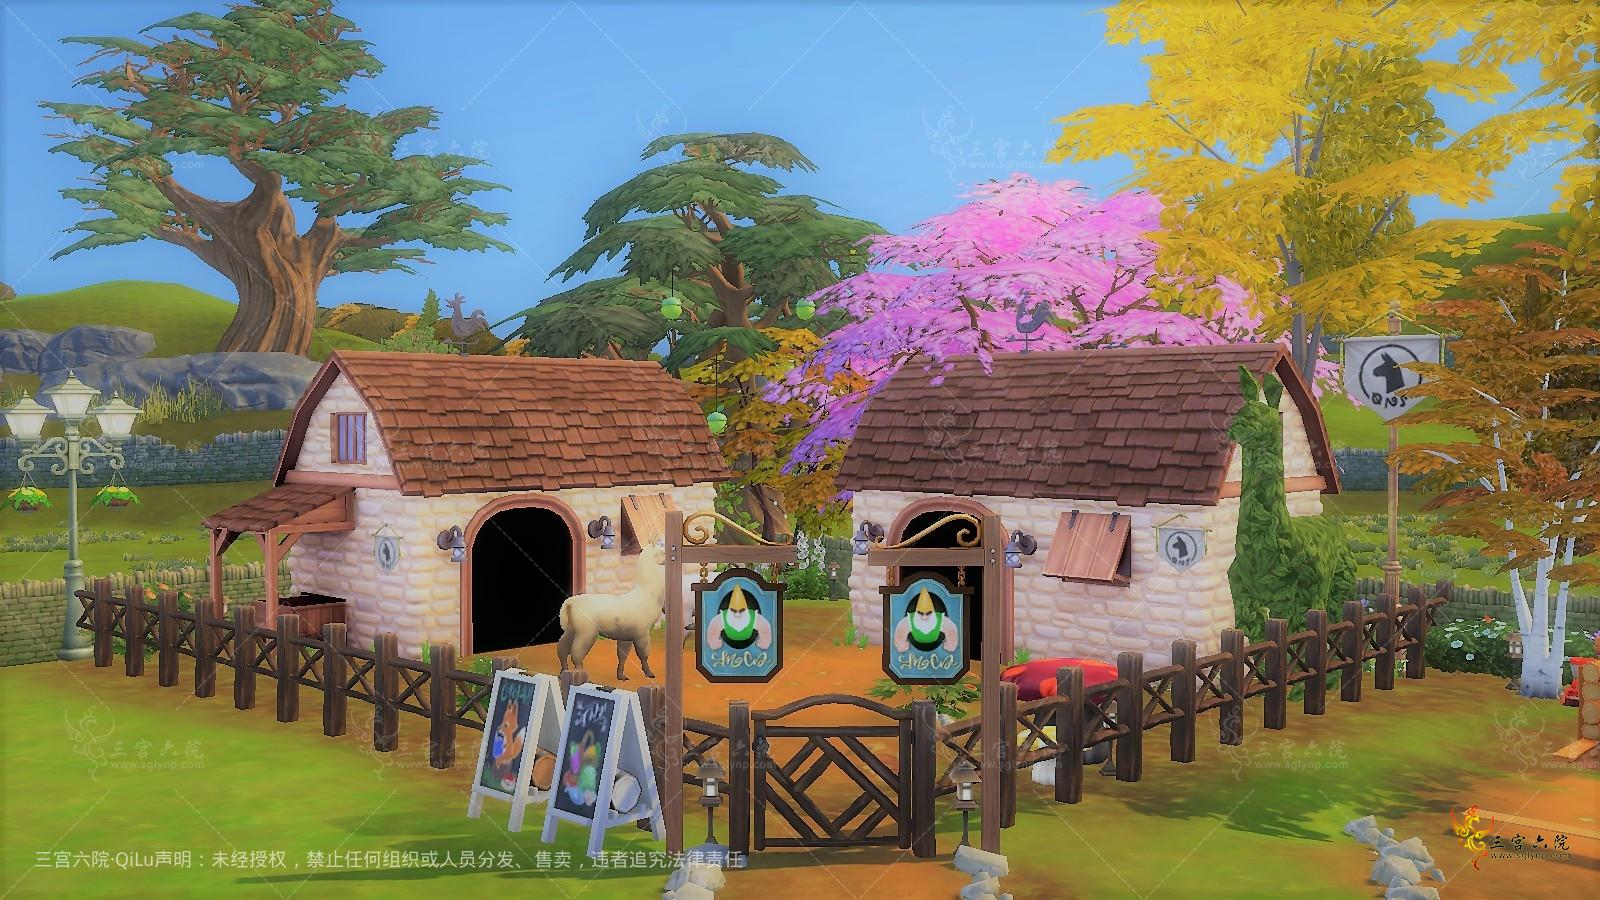 The Sims 4 2021_8_22 8_38_00.png